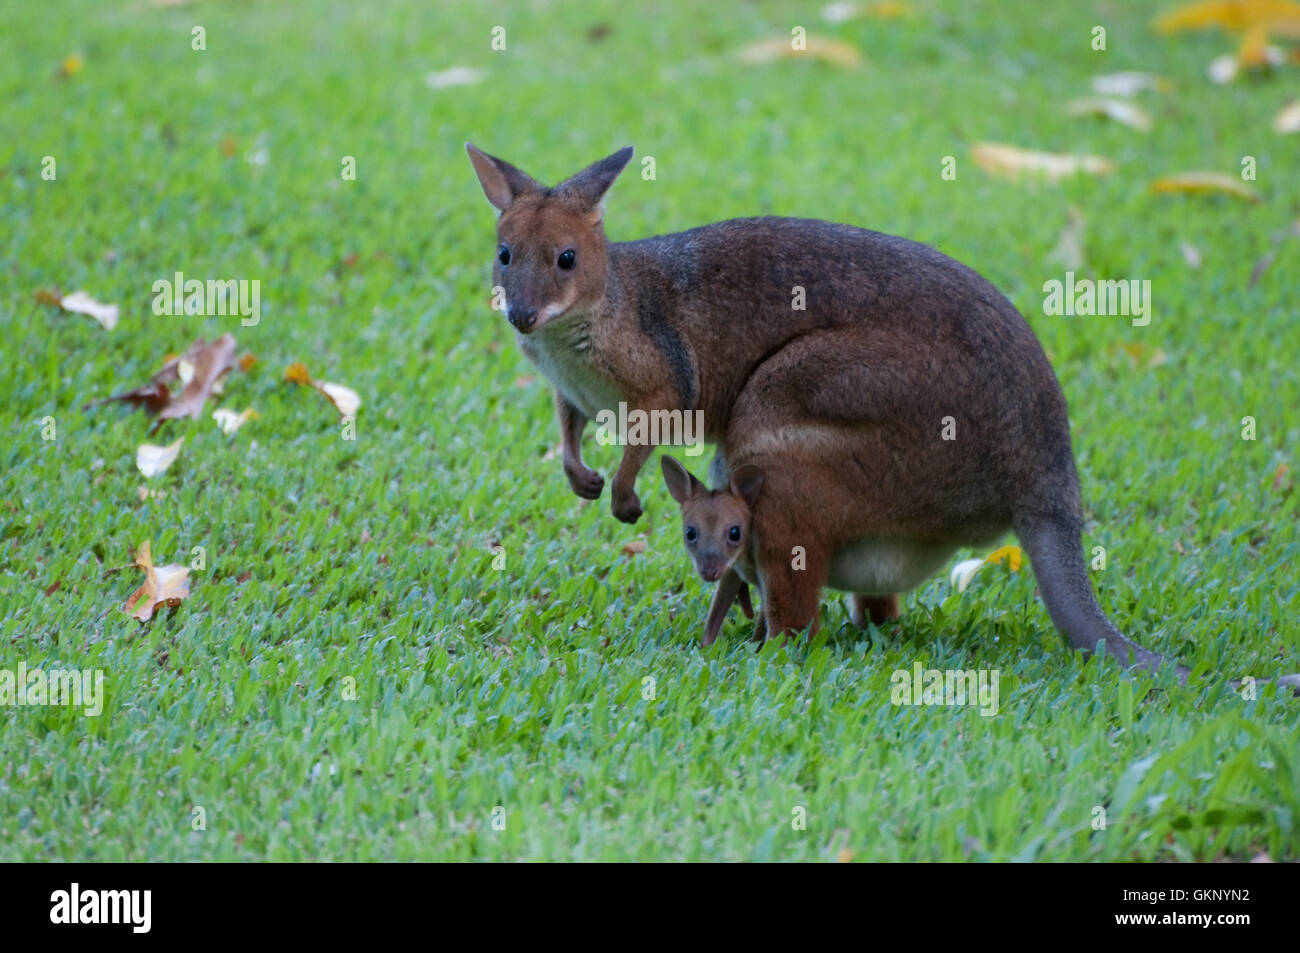 Red-legged Pademelon (Thylogale stigmatica) with joey - Stock Image